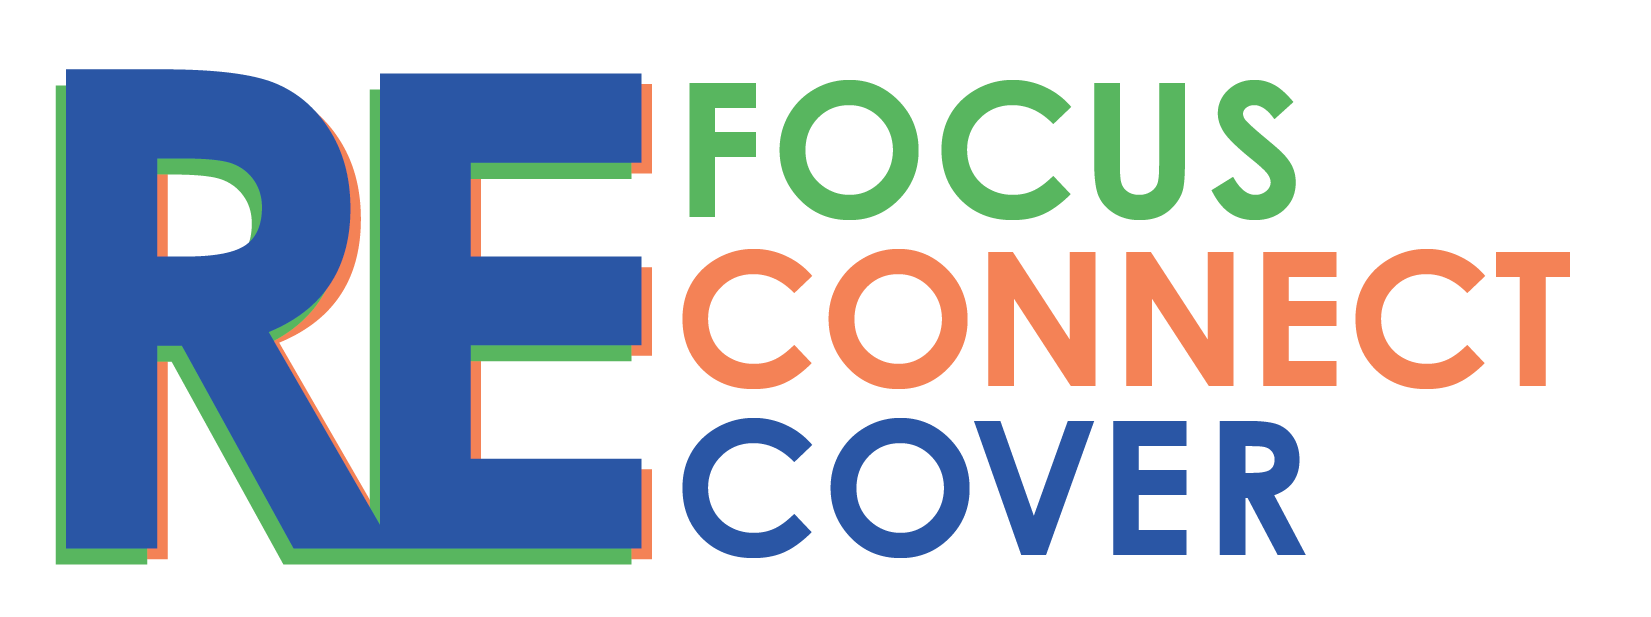 The Refocus, Reconnect and Recover logo in the colors of green, orange and blue.